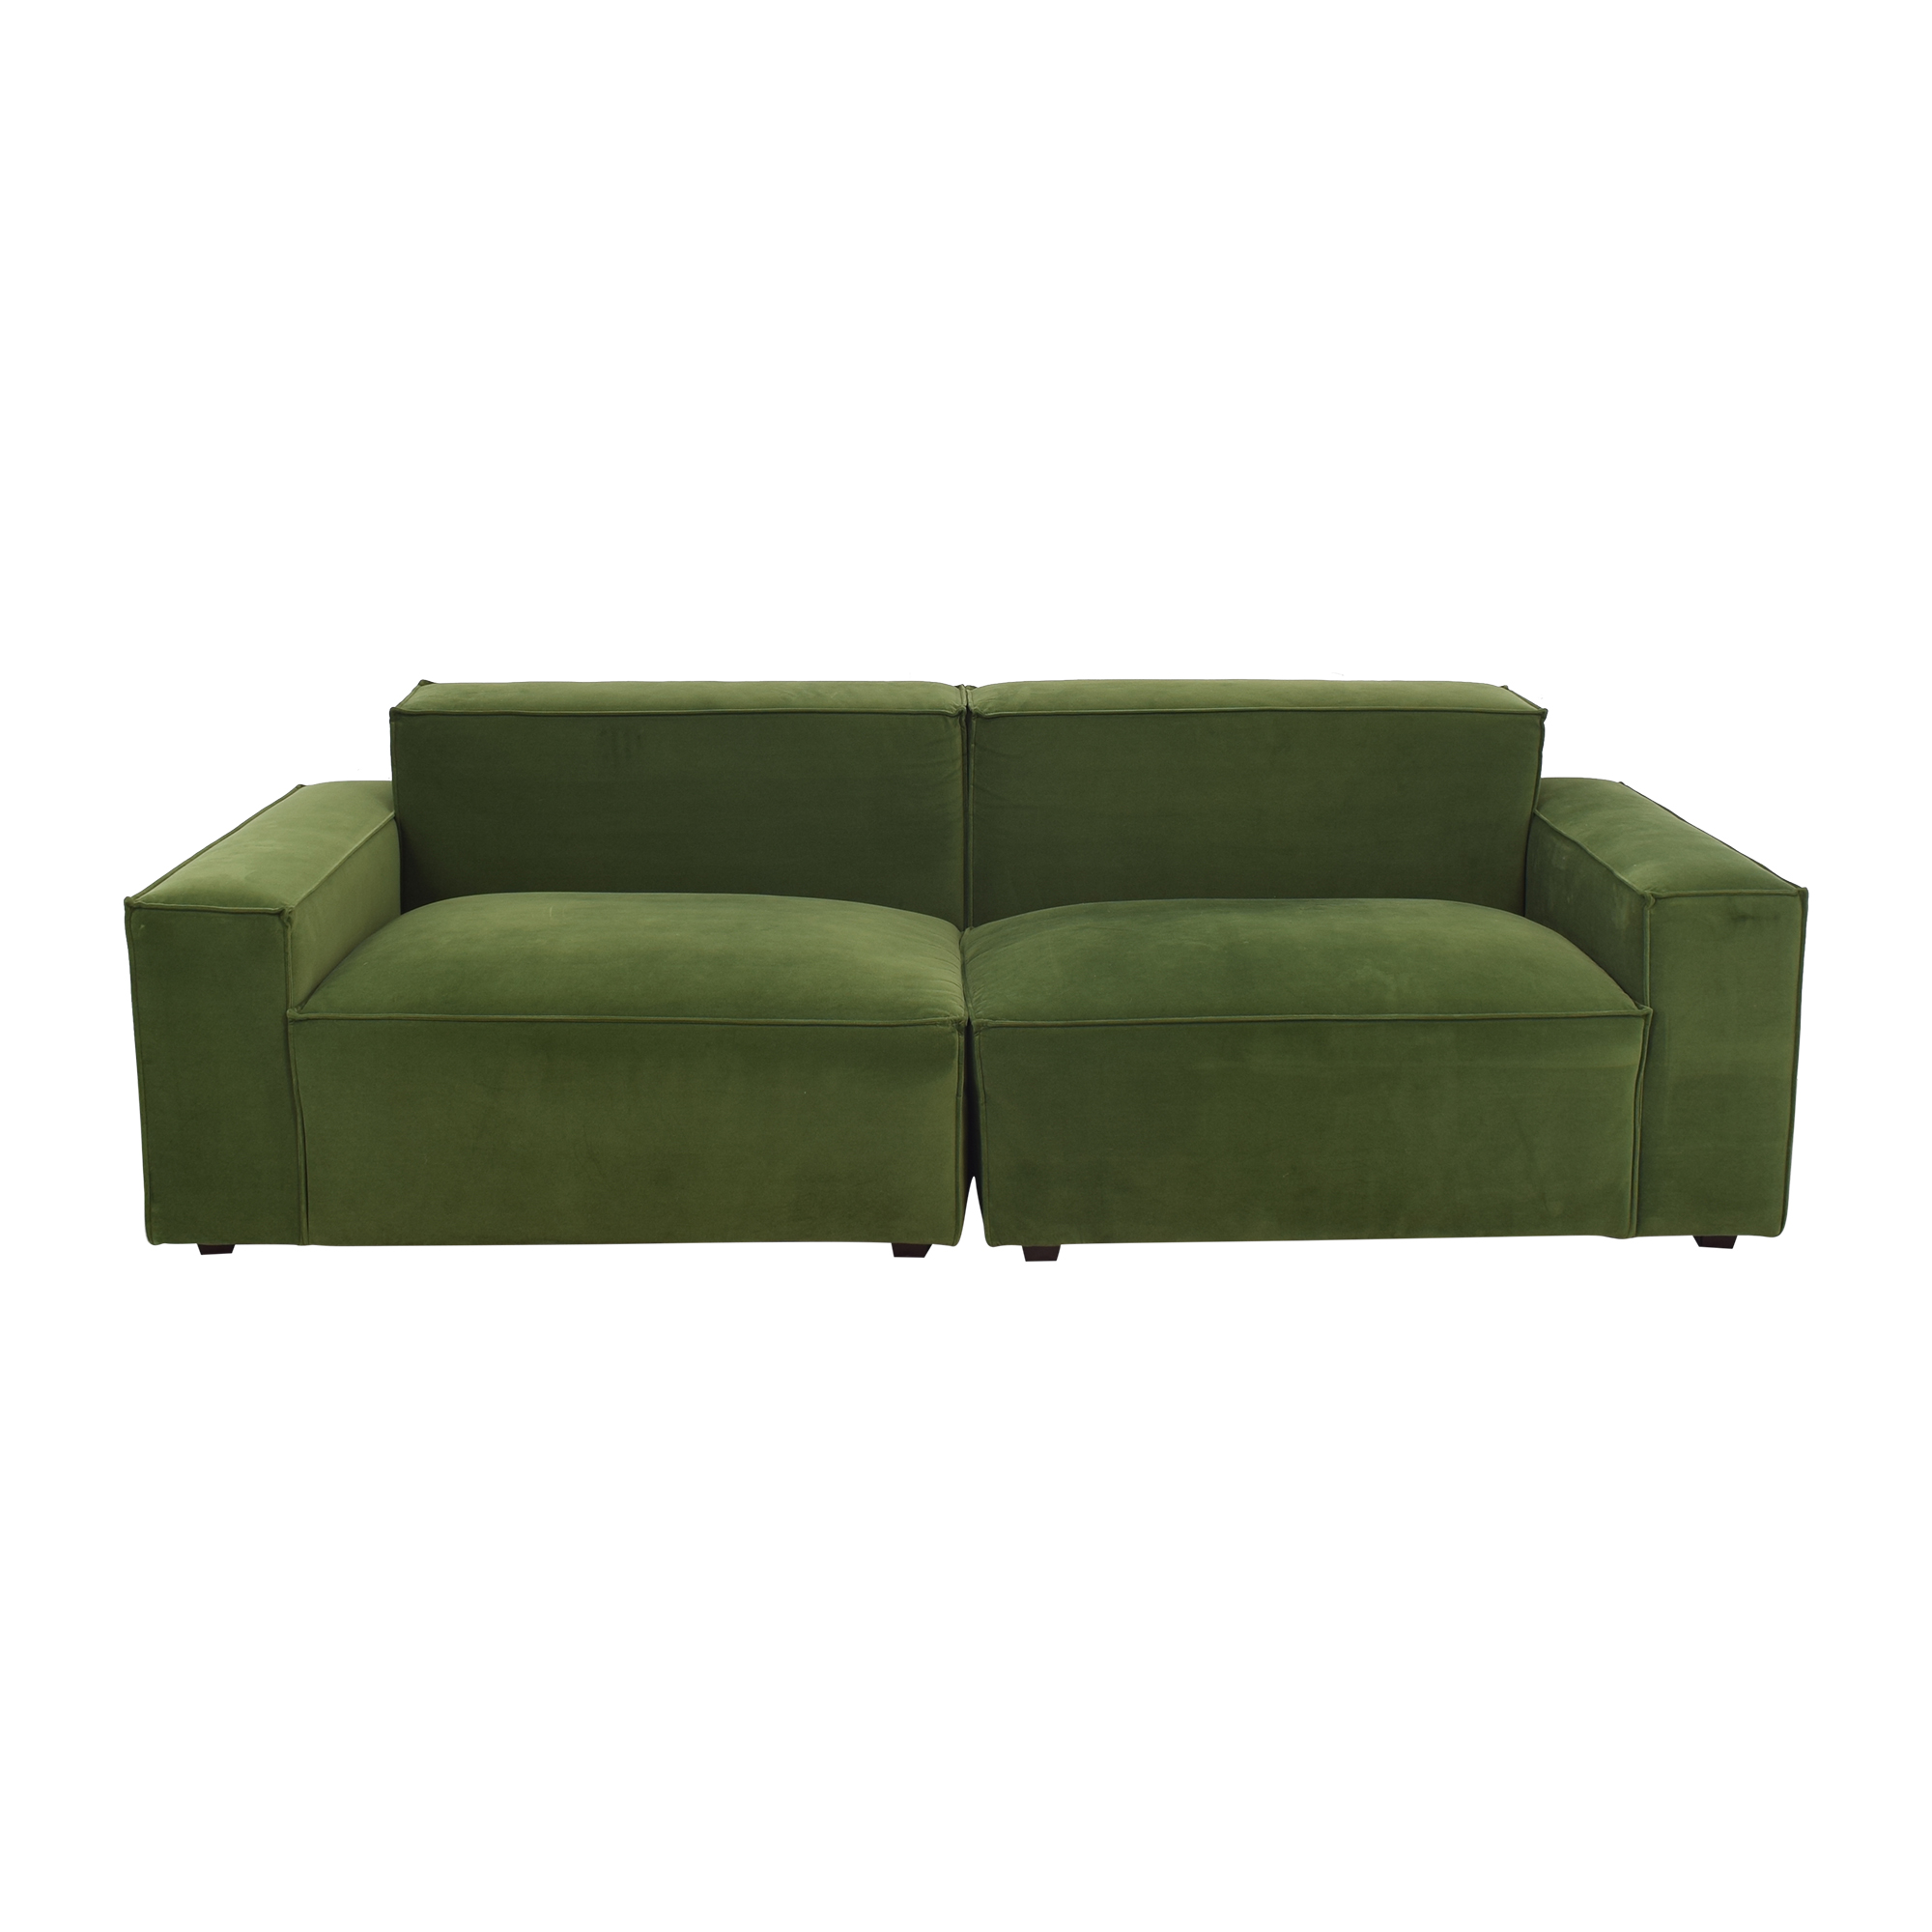 A.R.T. Furniture A.R.T. Raelyn Olafur Two Piece Modular Sectional Sofa Sofas